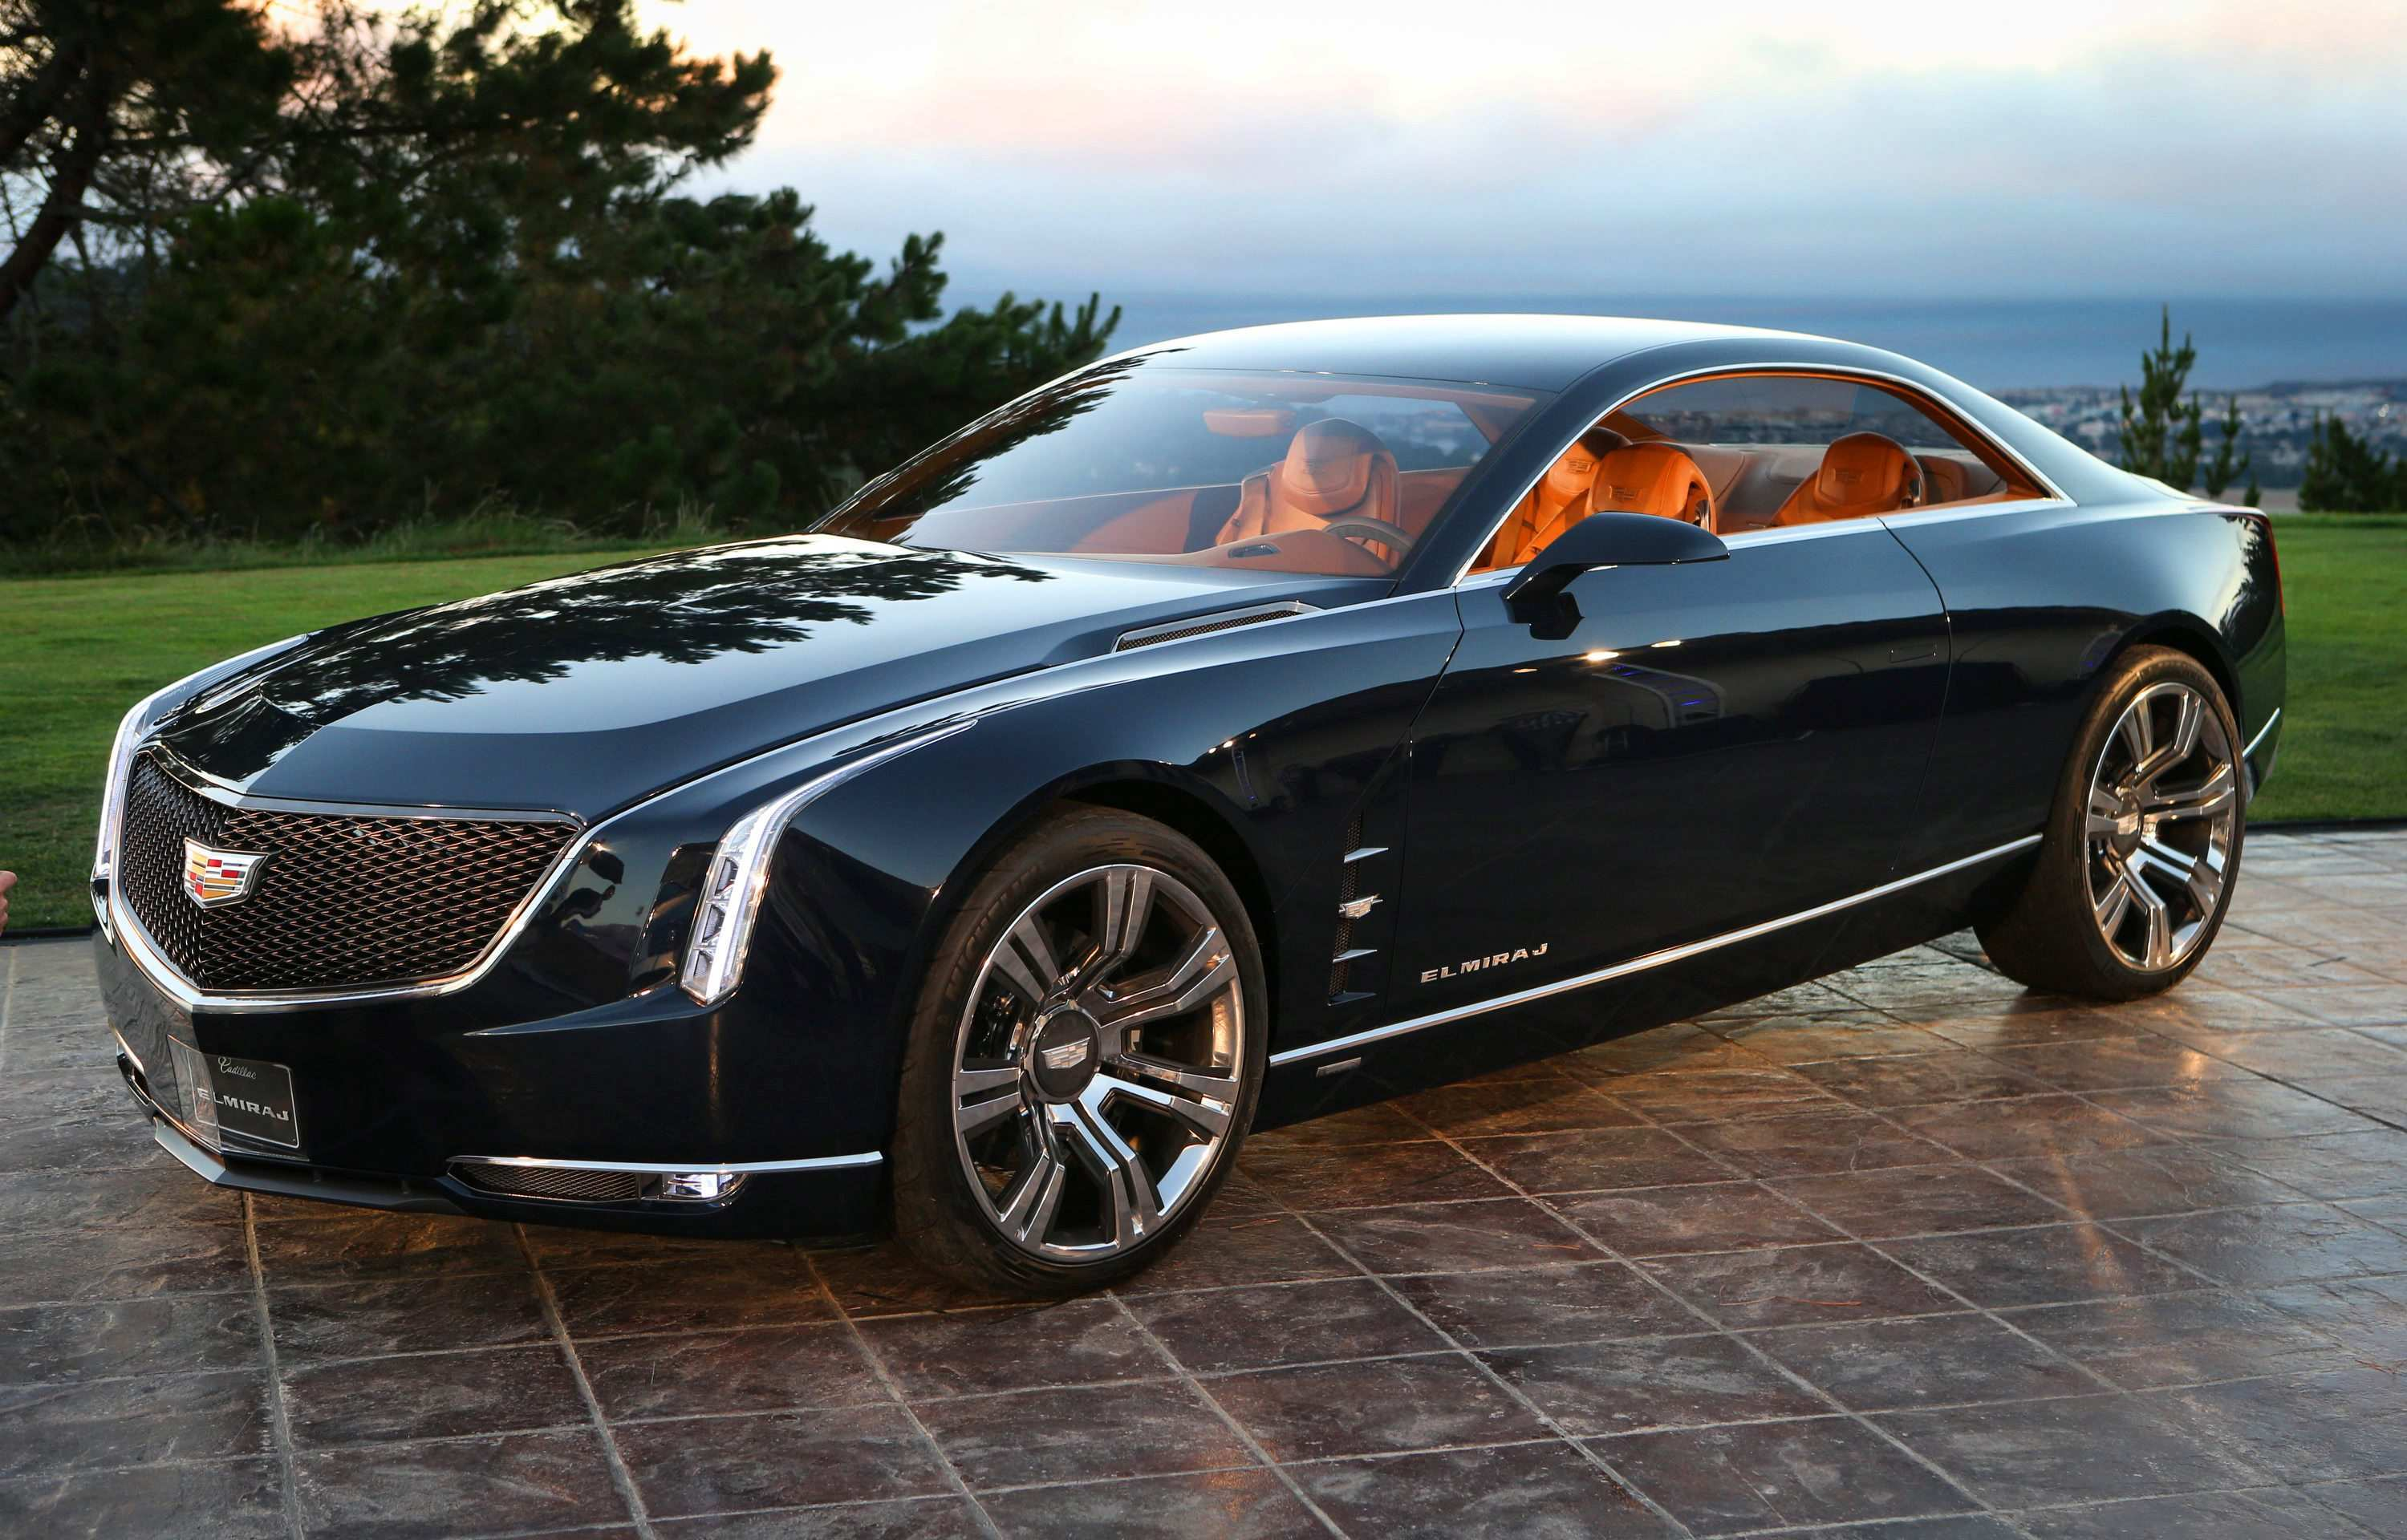 86 The Best Cadillac Xlr 2020 Concept And Review